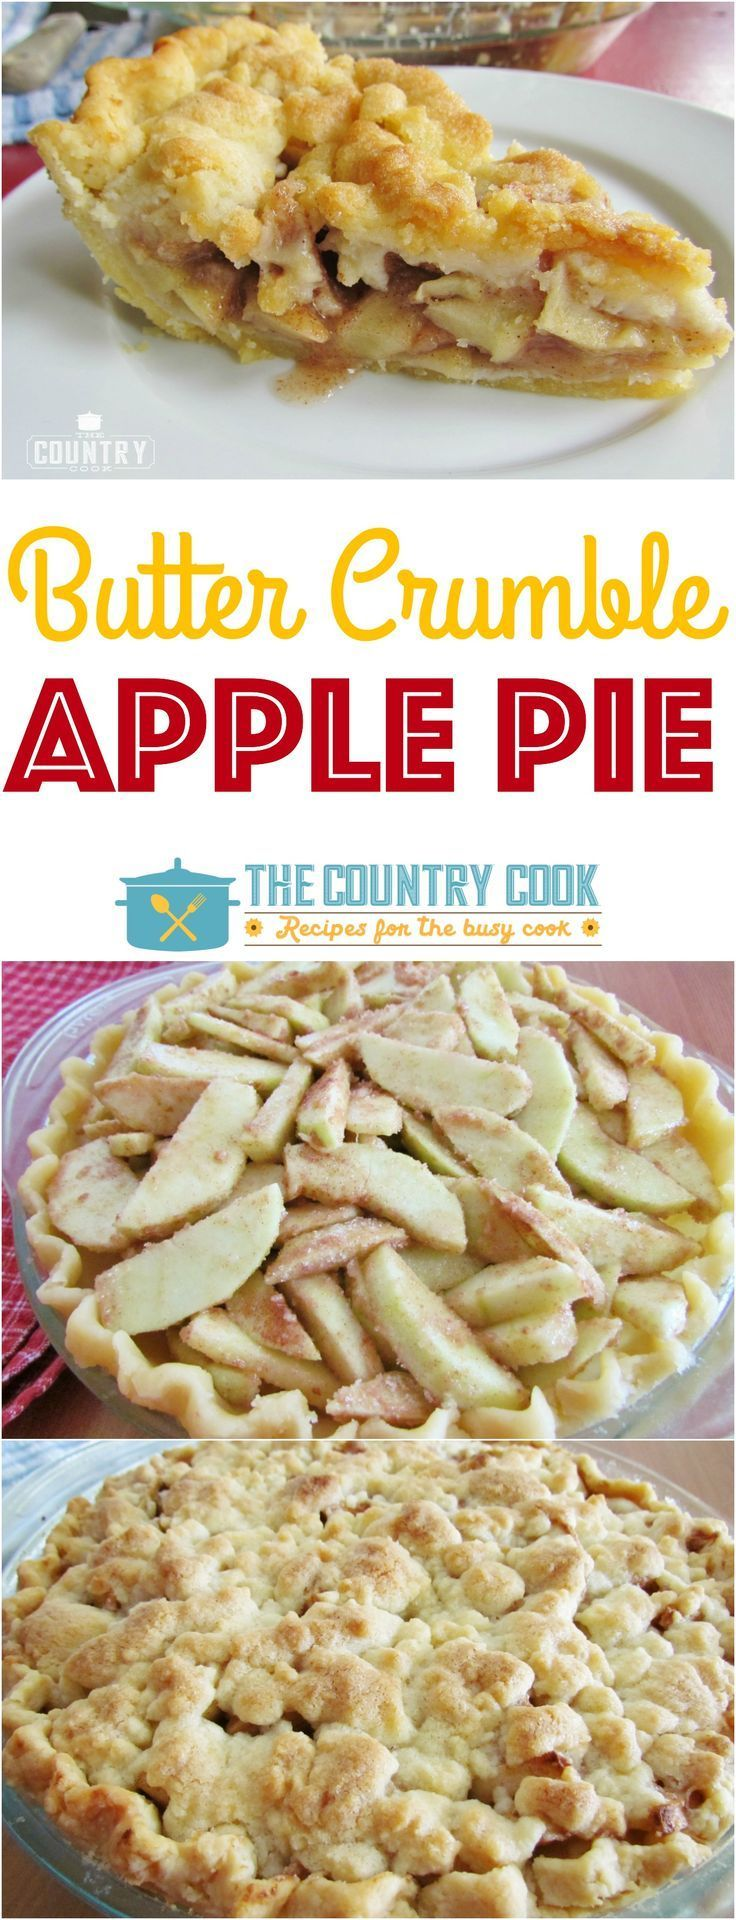 BUTTER CRUMBLE APPLE PIE (+Video) | The Country Cook